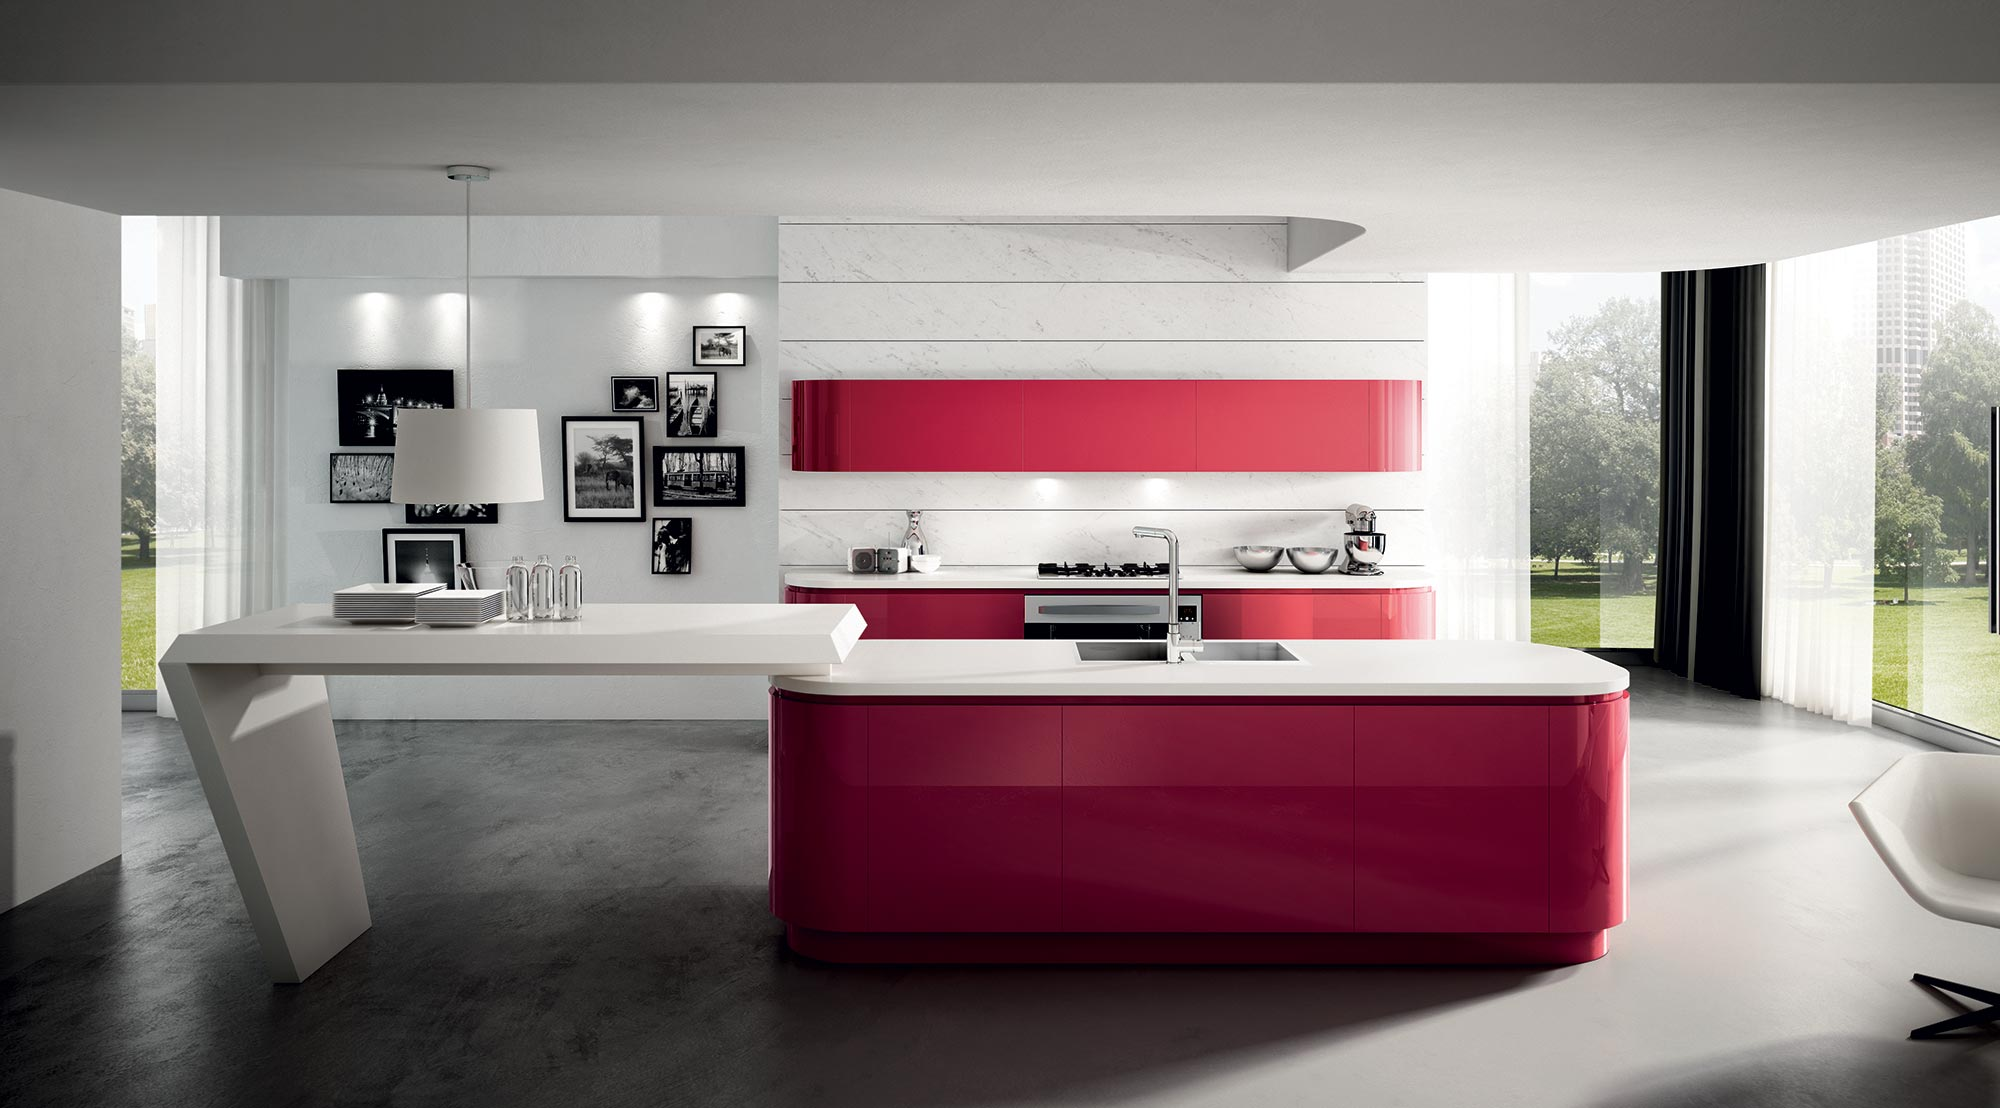 Interior design ideas.The Red color as part of the Kitchen interior